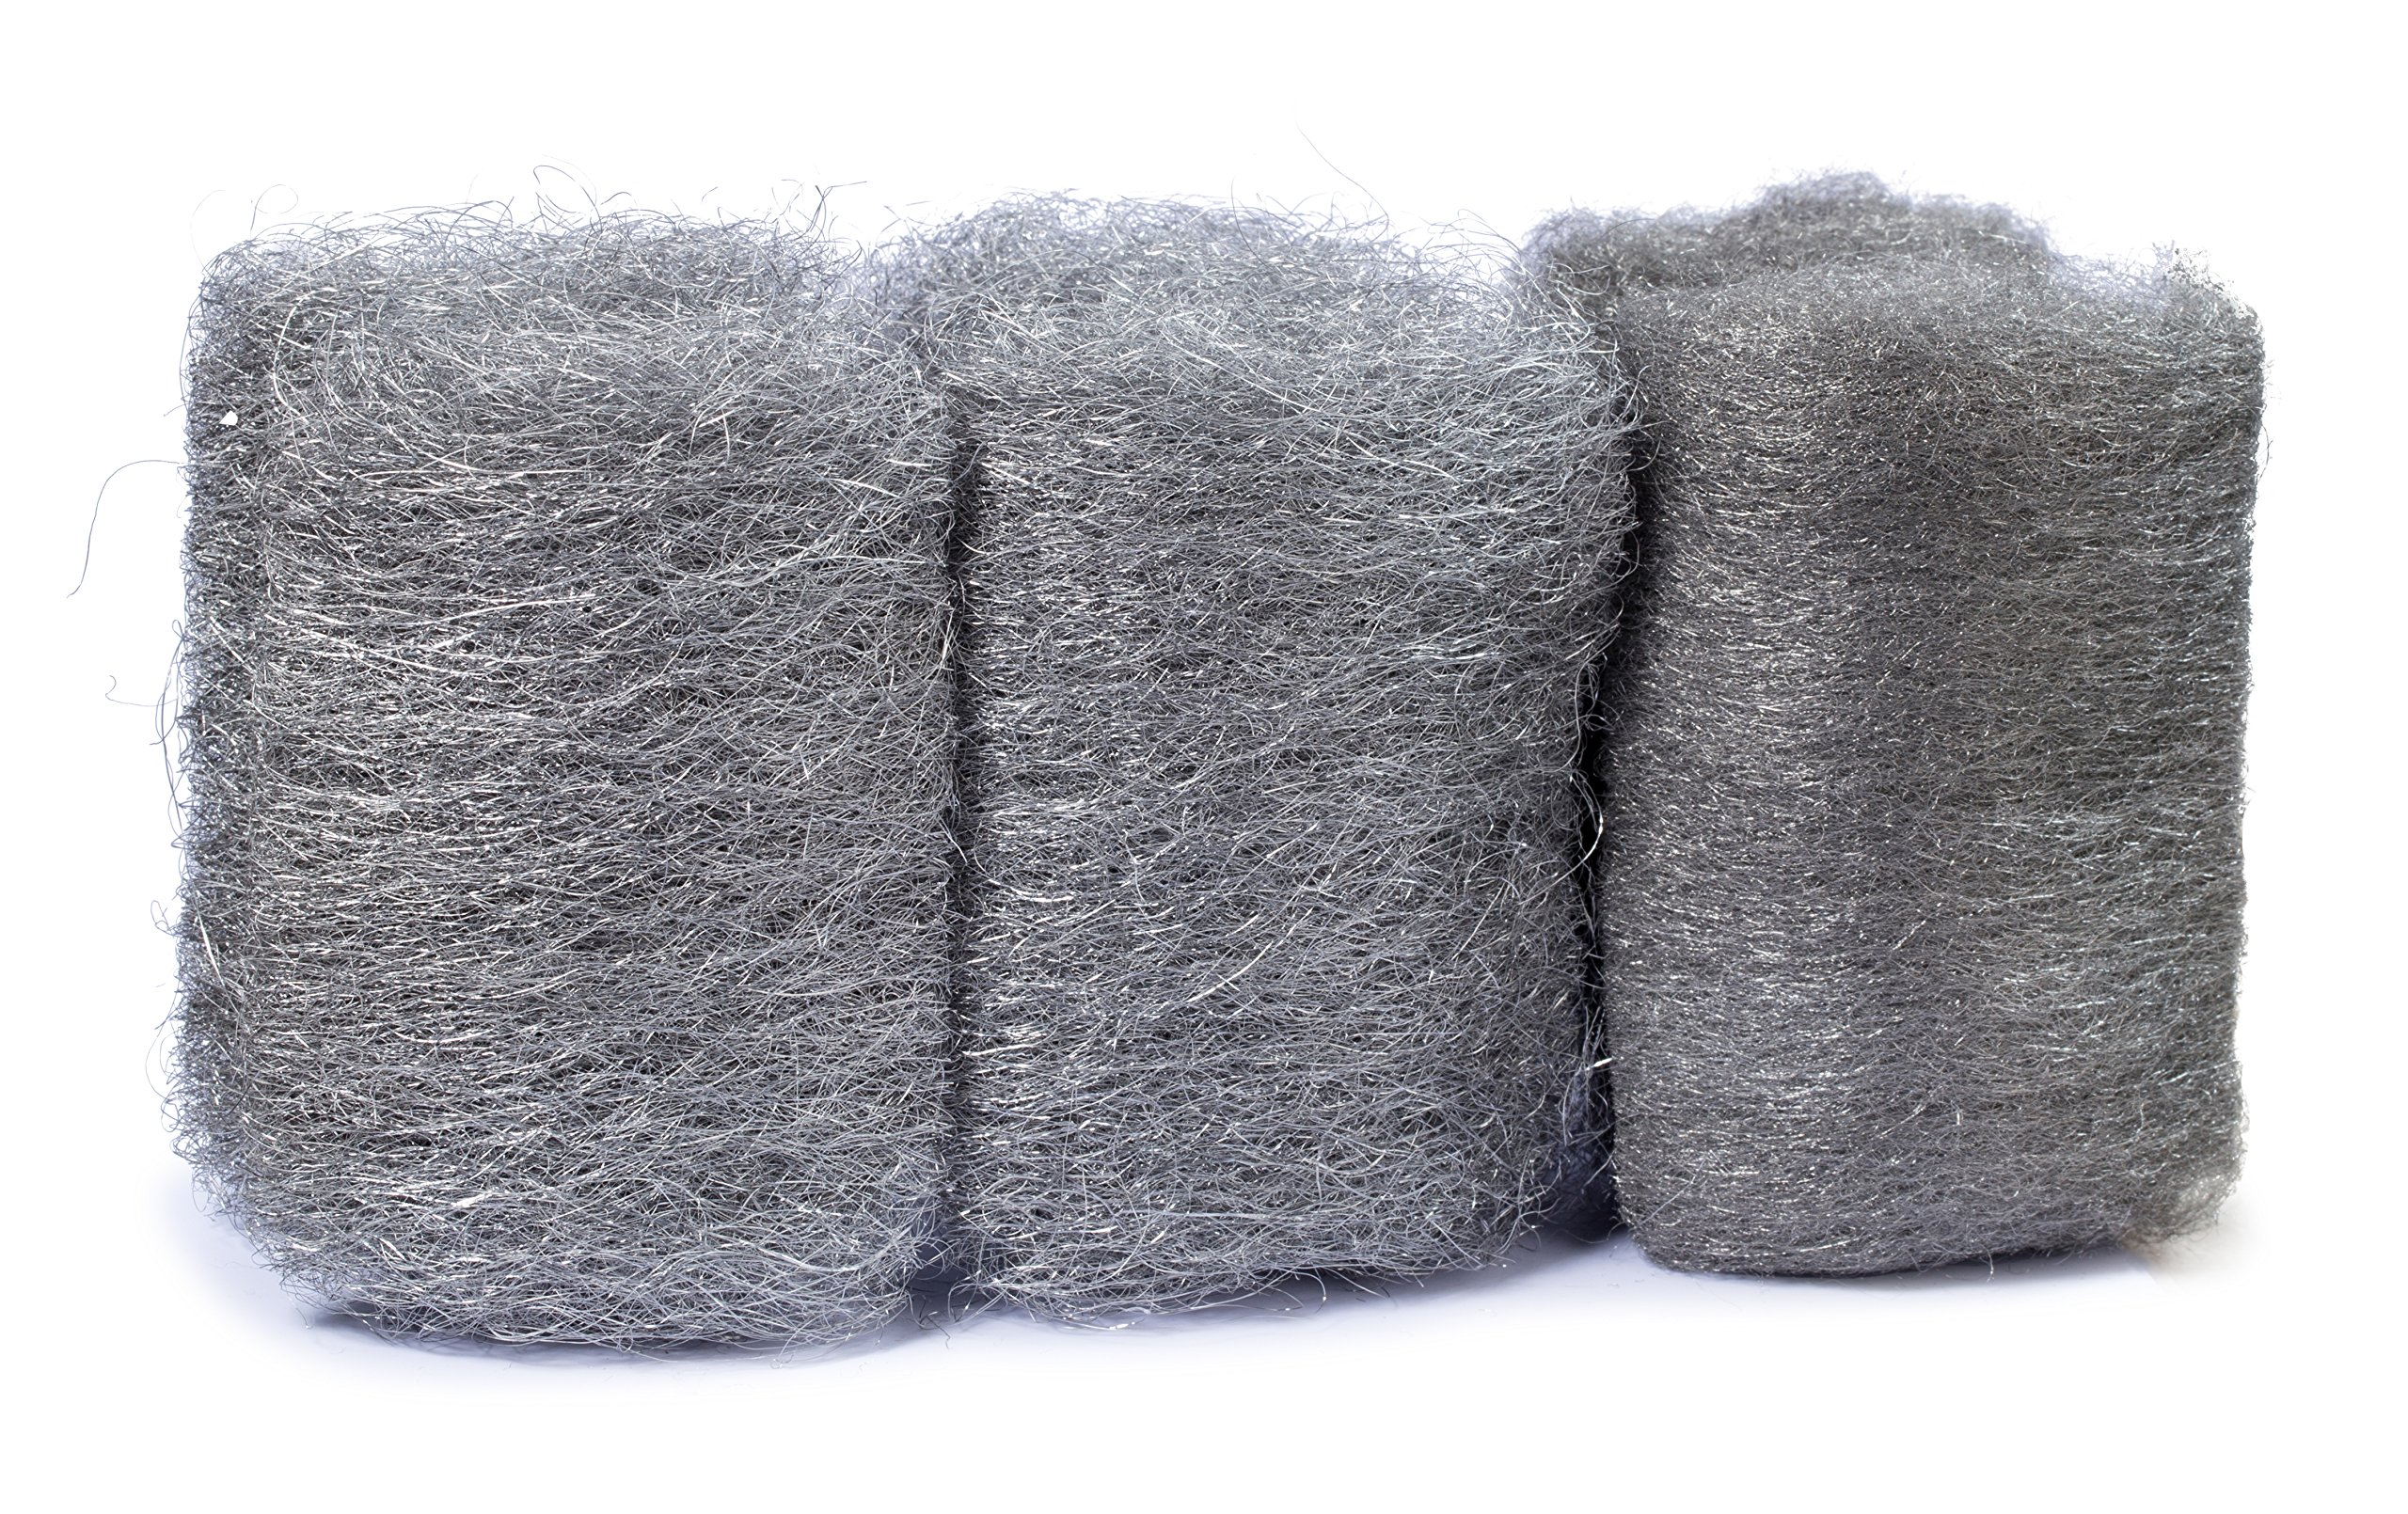 12 Pads Steel Wool Assortment, Multi-Grade Pack, Very fine, Medium, and Coarse, high-Quality scouring Pad for mice, cast Iron, Dishes, pots, Pans and All-Purpose.